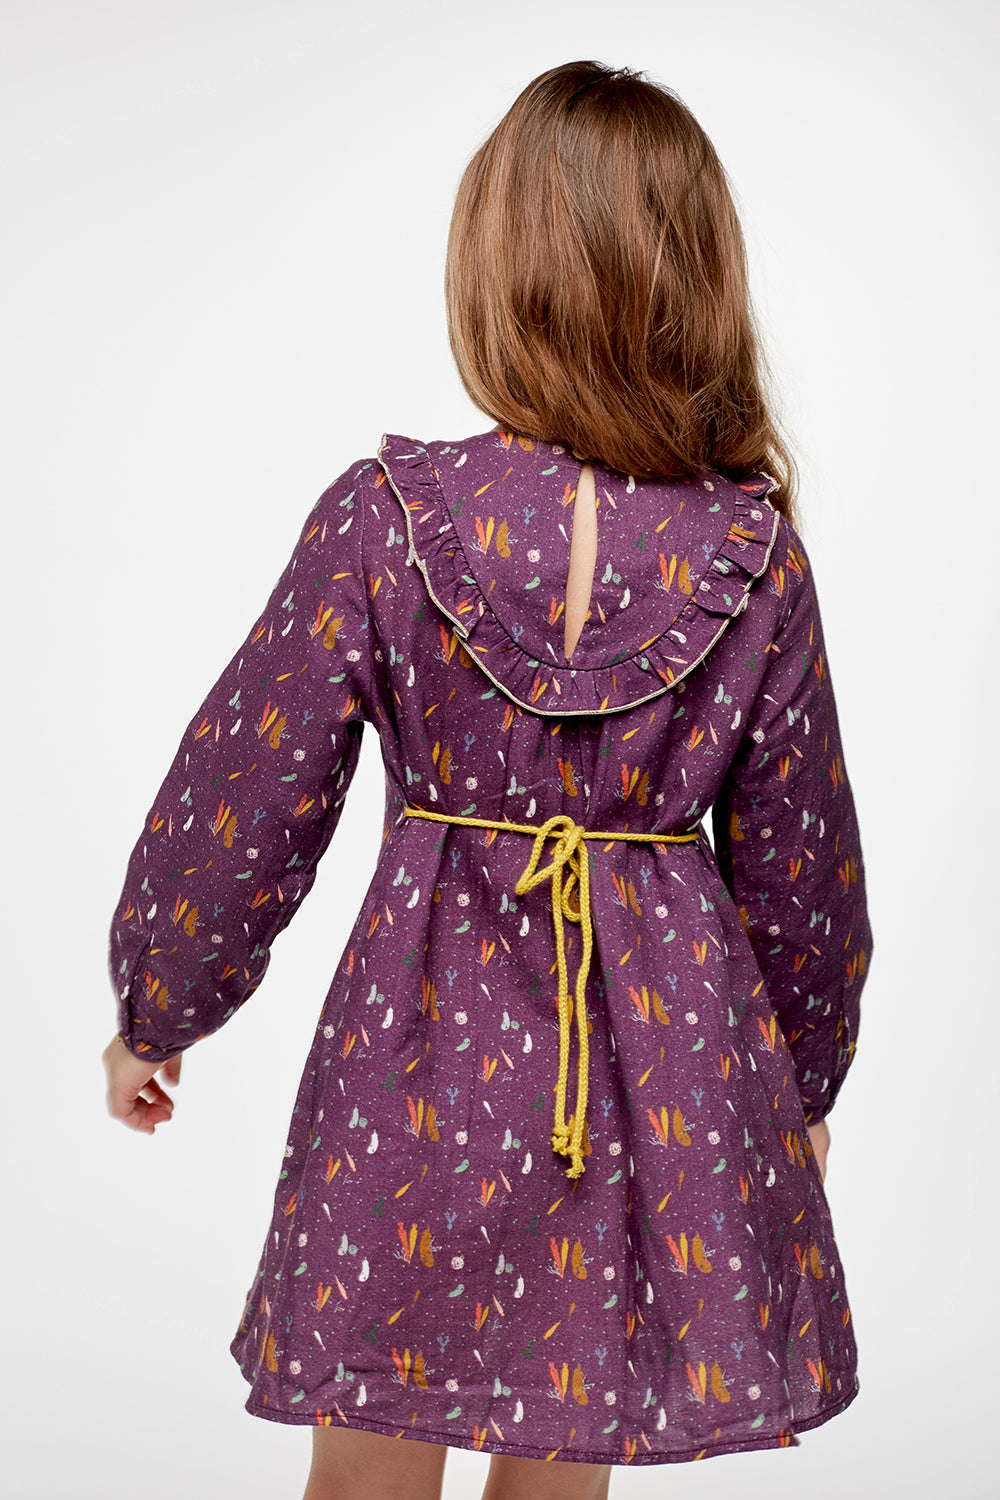 Load image into Gallery viewer, Coco Au Lait BABY BURGUNDY PRINTED DRESS Dress Prune Purple